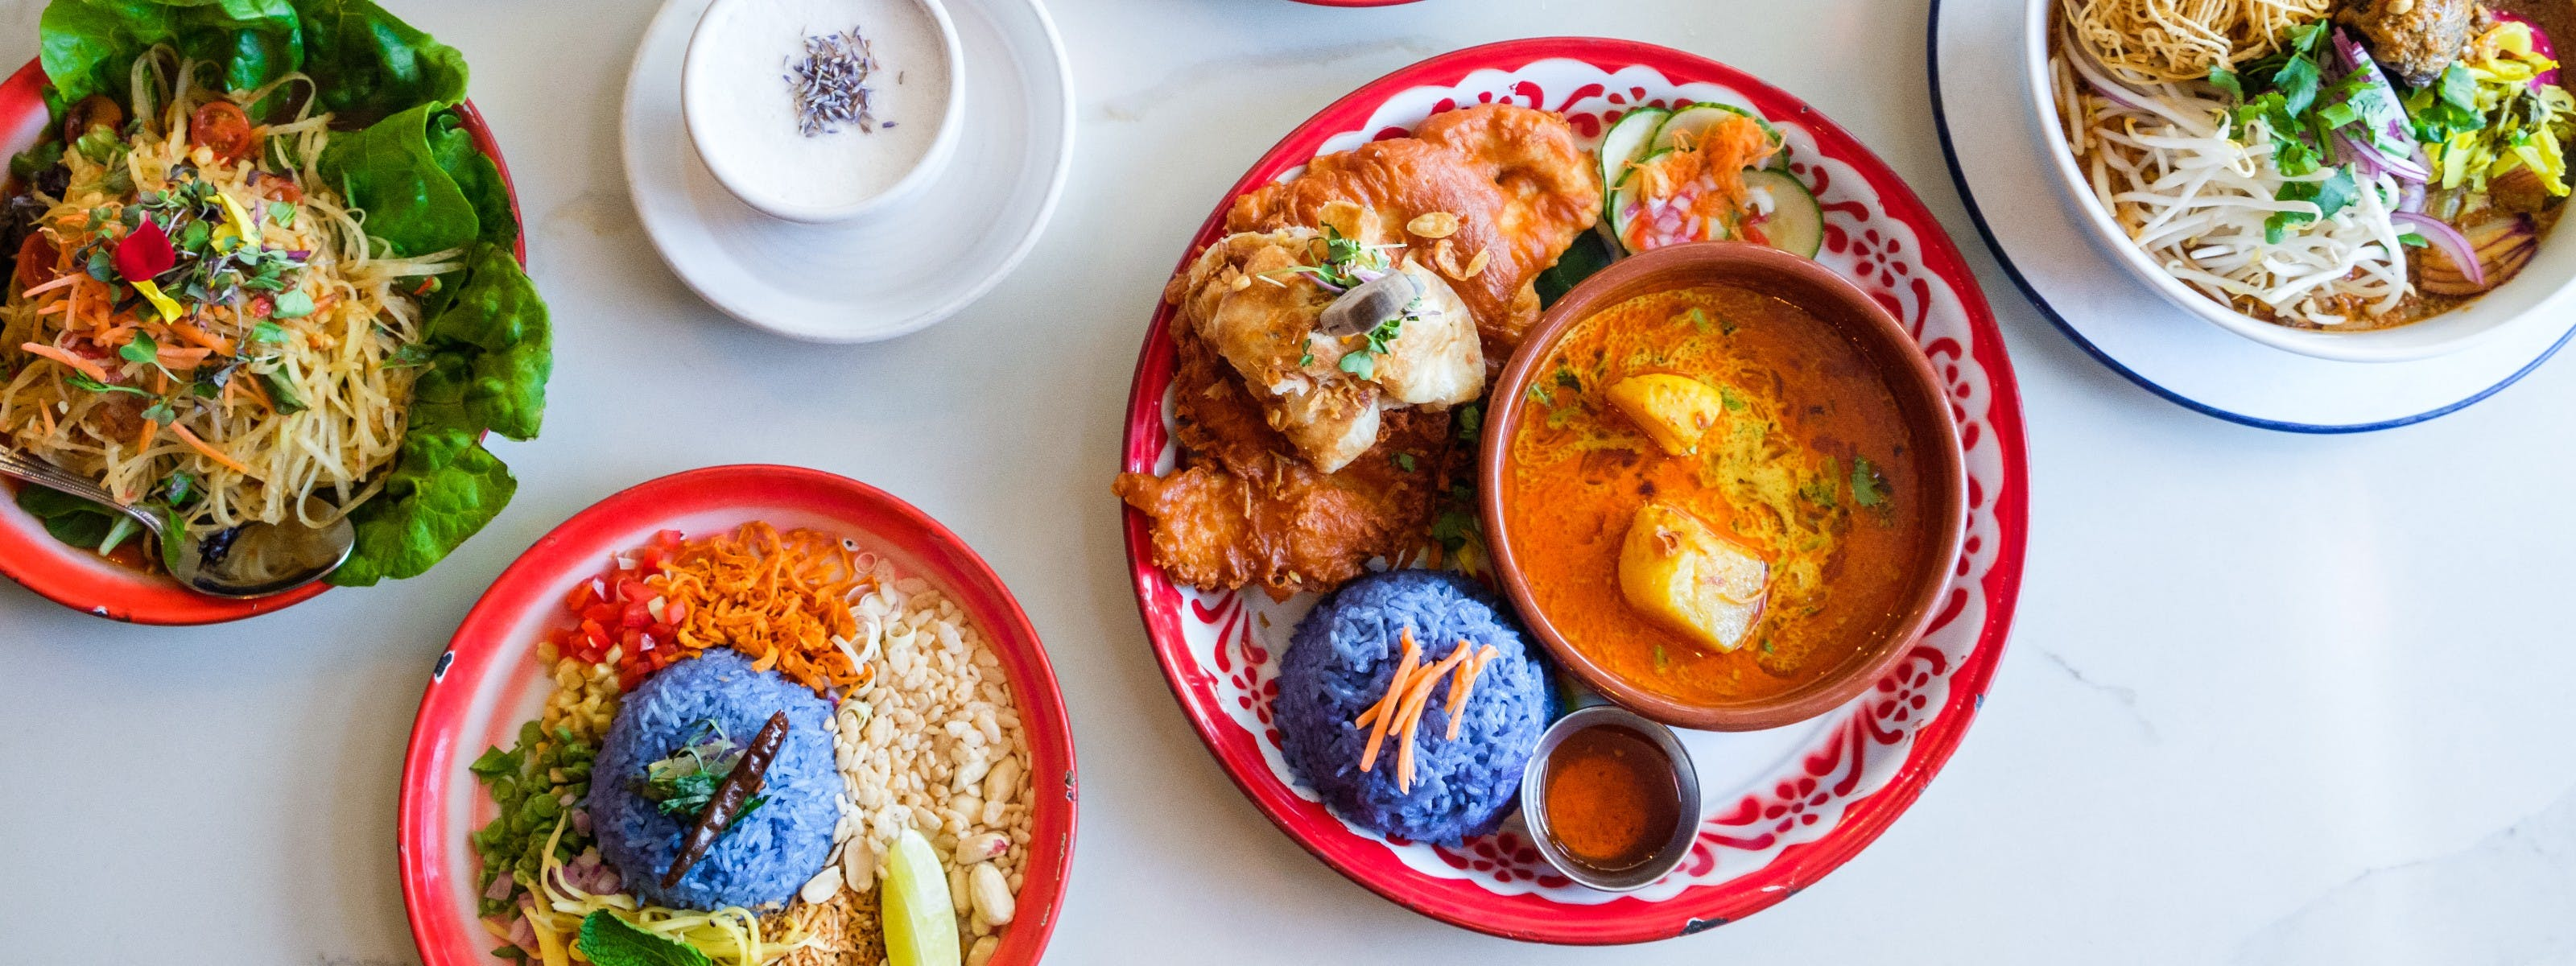 Where To Get Thai Takeout And Delivery In Sf The East Bay San Francisco The Infatuation